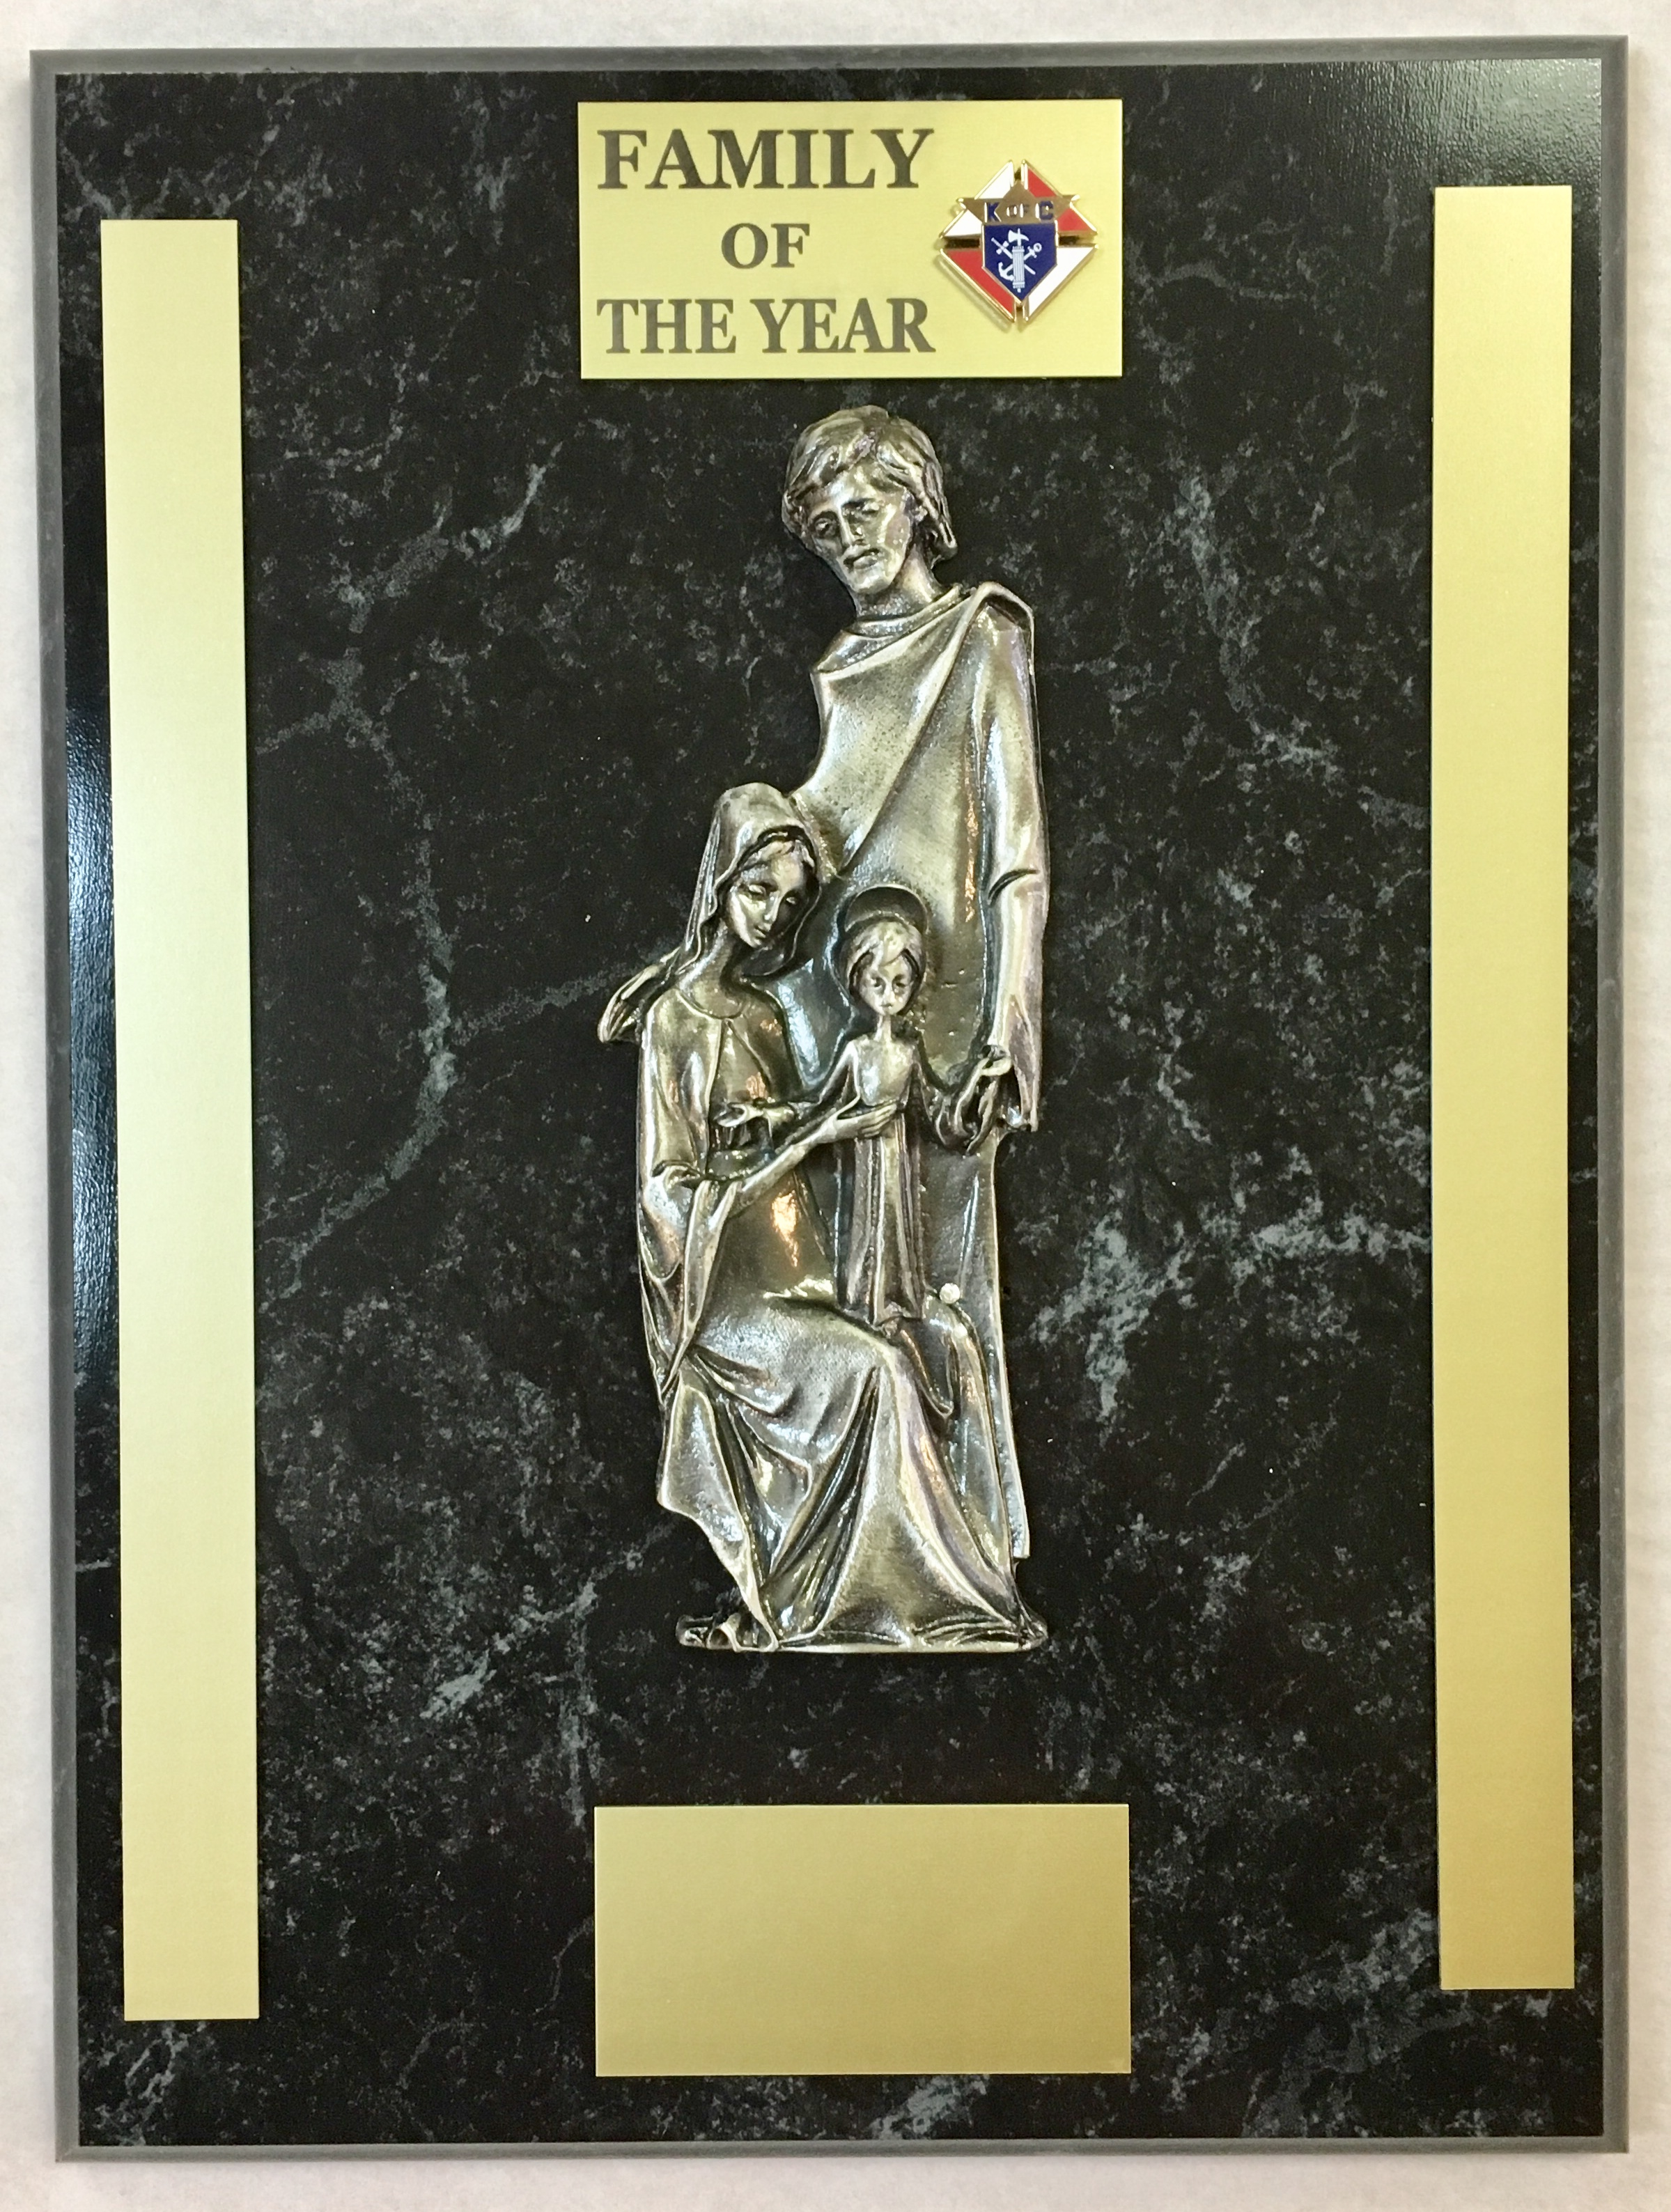 Family Of the Year Plaque